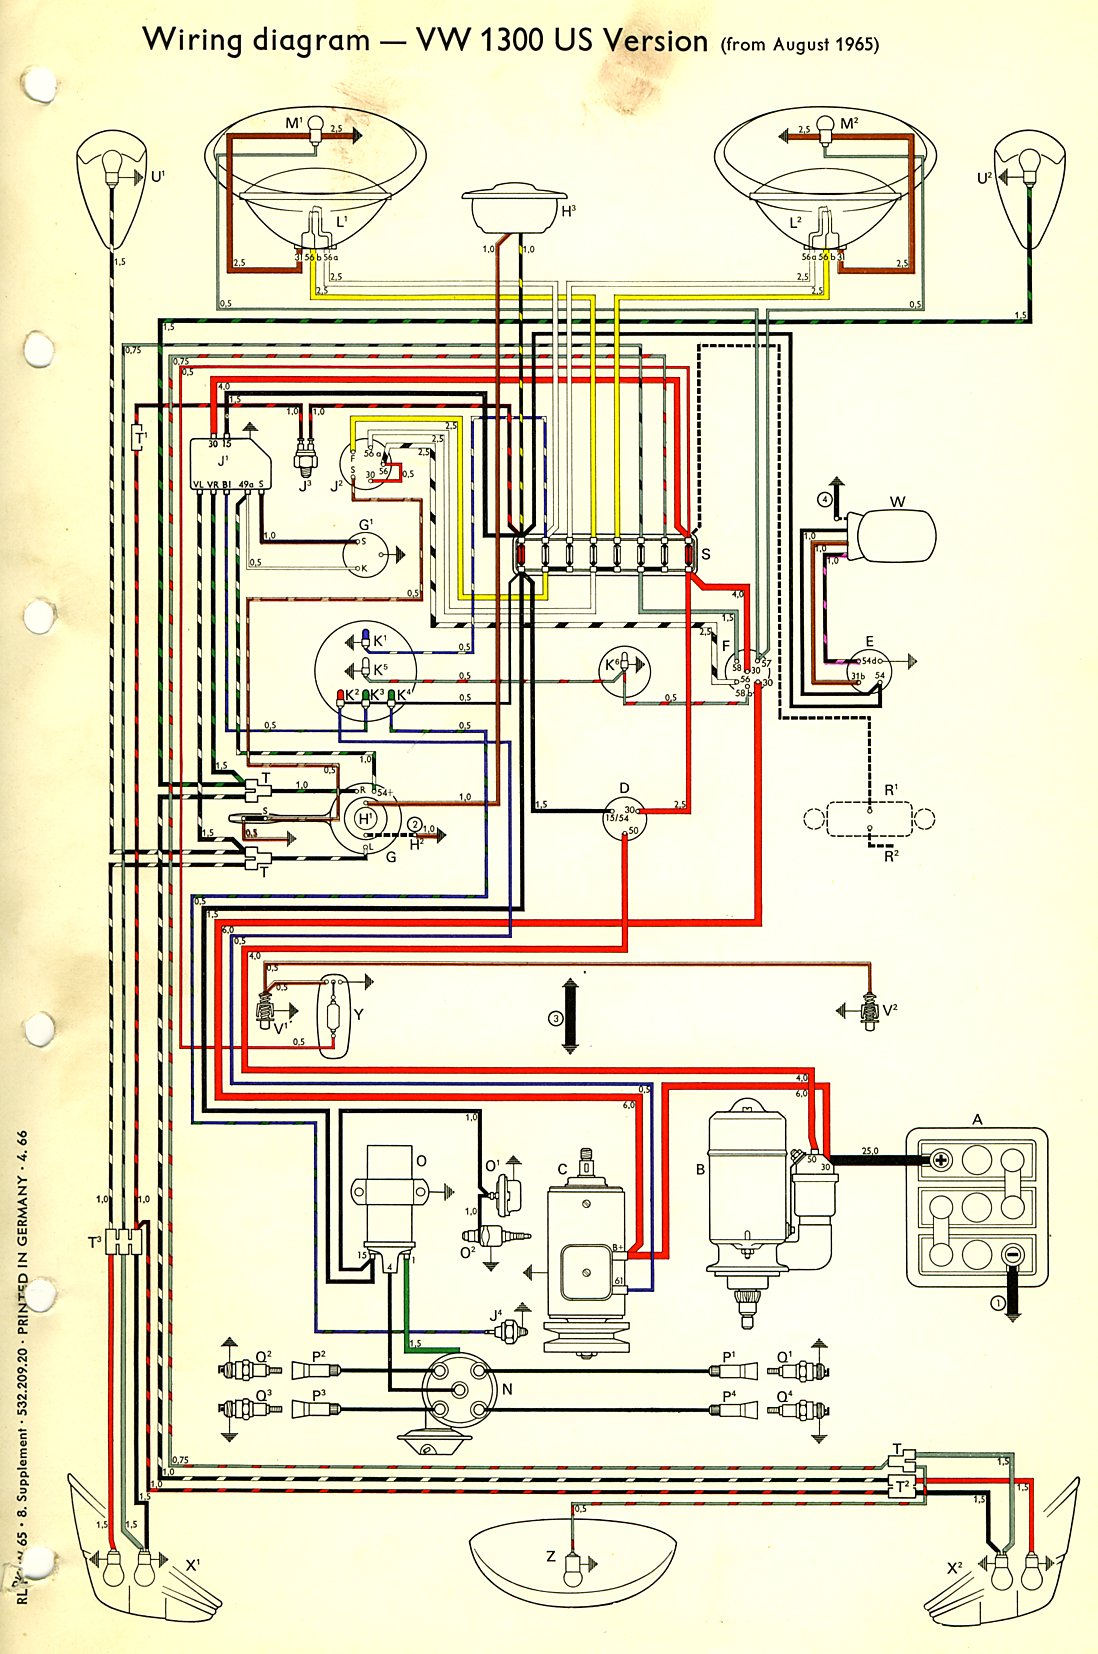 Vw Bug Engine Wiring Diagram Just Another Blog 72 Volkswagen Beetle Thesamba Com Type 1 Diagrams Rh 1965 58